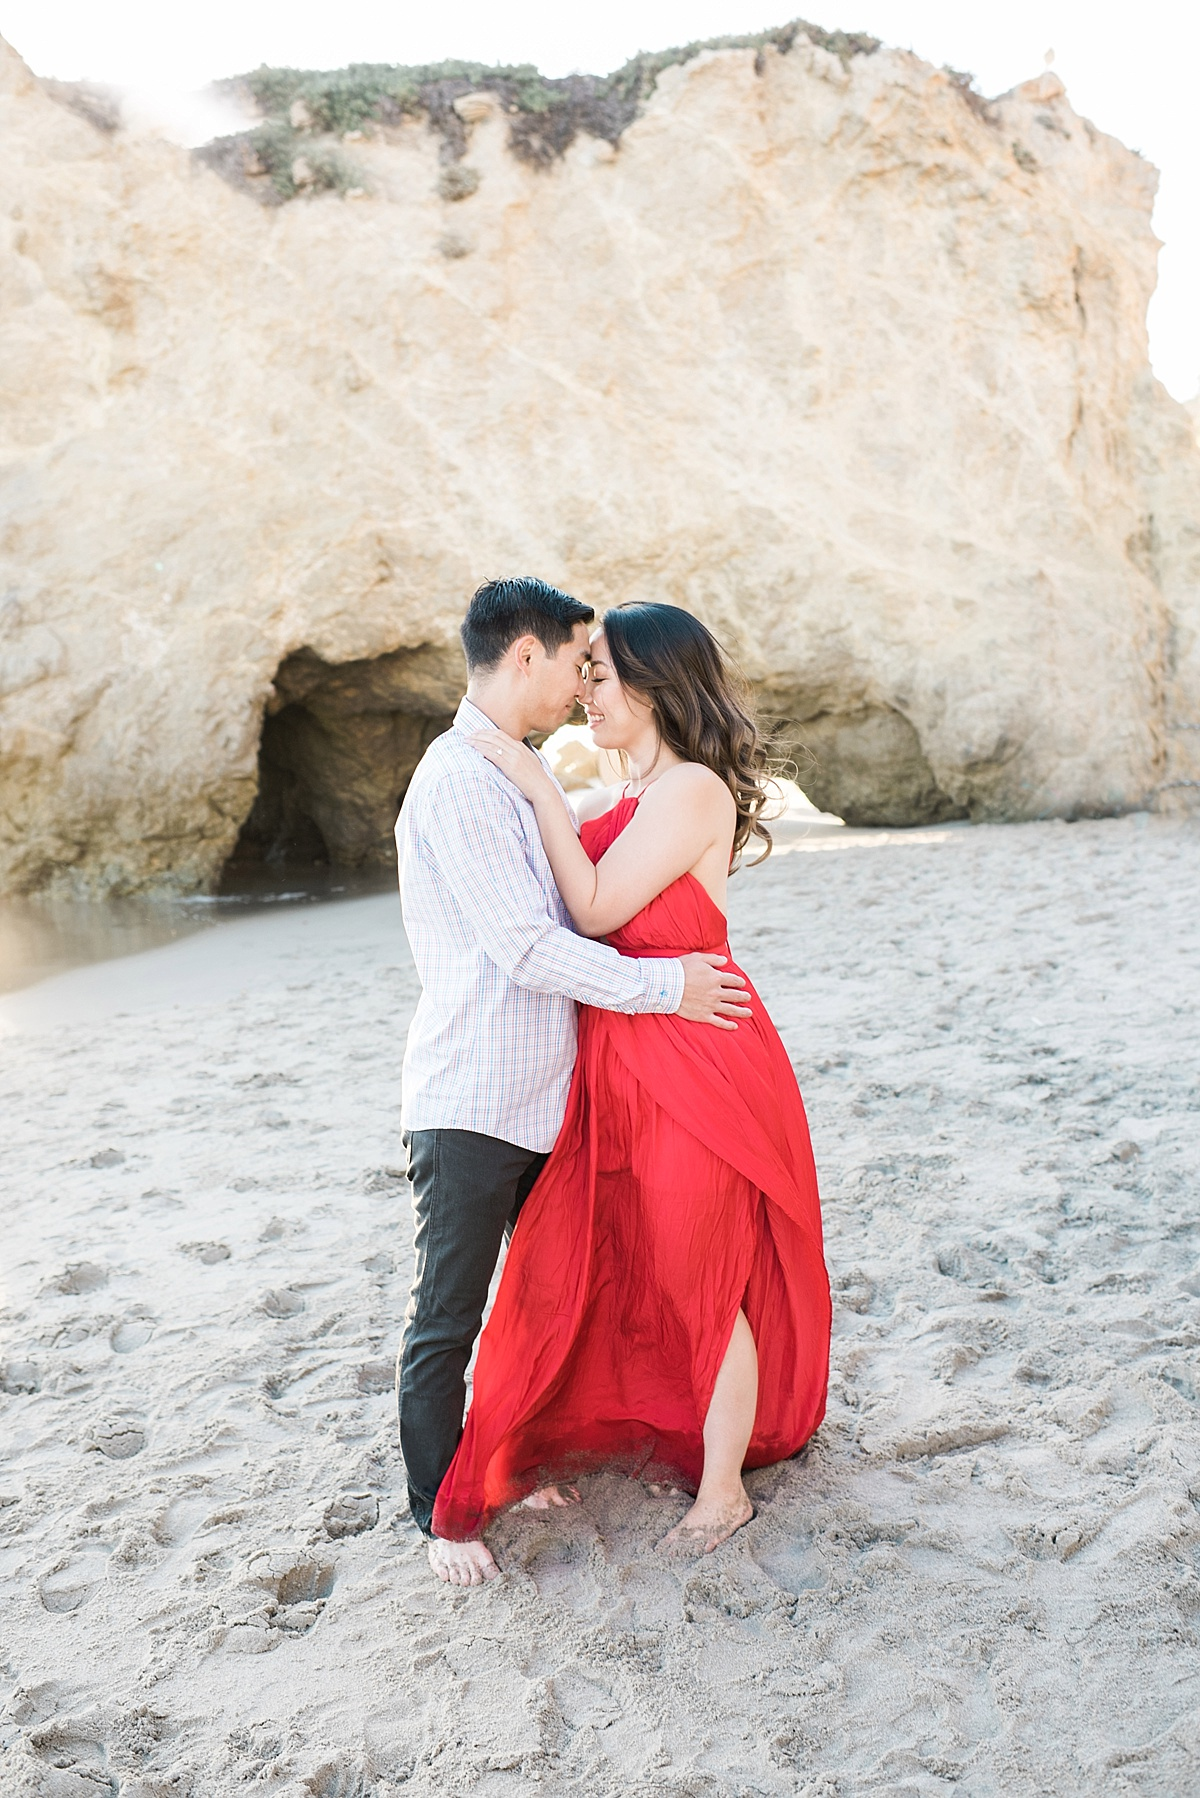 Malibu-Engagement-Photographer-Ally-Jeff-Carissa-Woo-Photography_0033.jpg